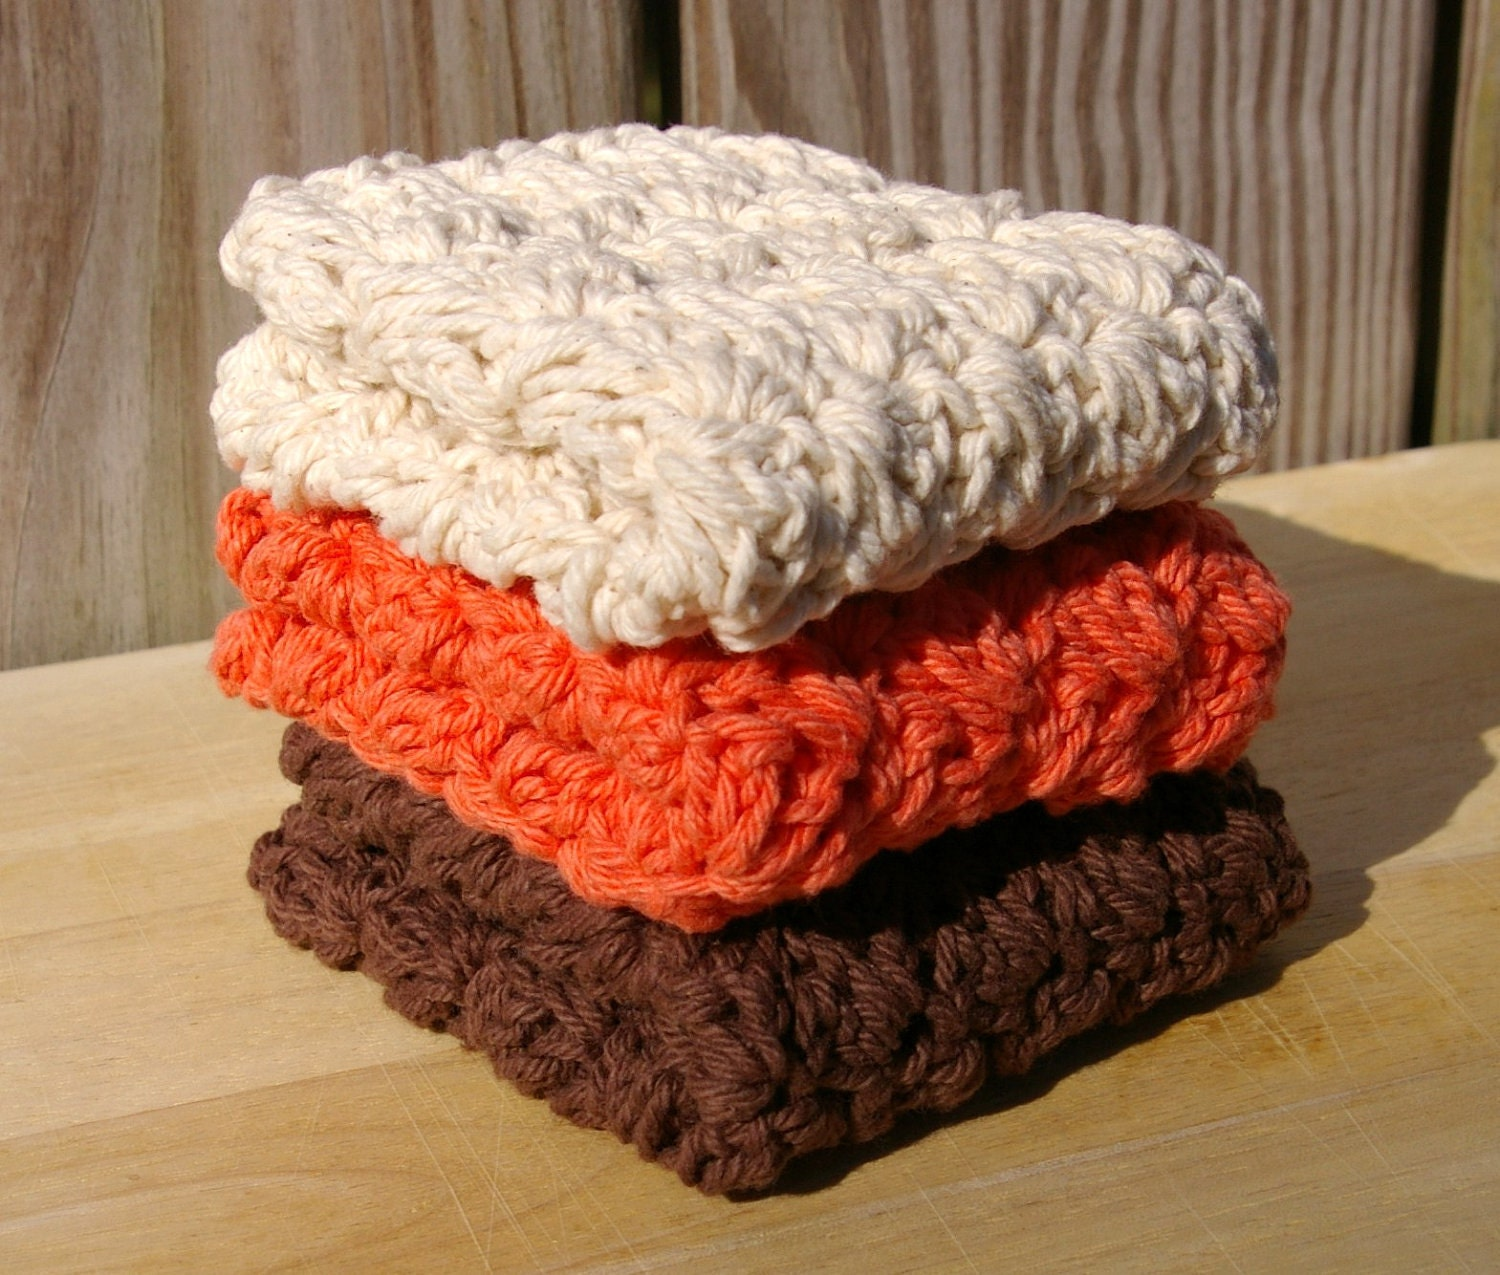 Crochet Dishcloths Cotton in Autumn Fall Brown, Ecru, Tangerine - CandacesCloset